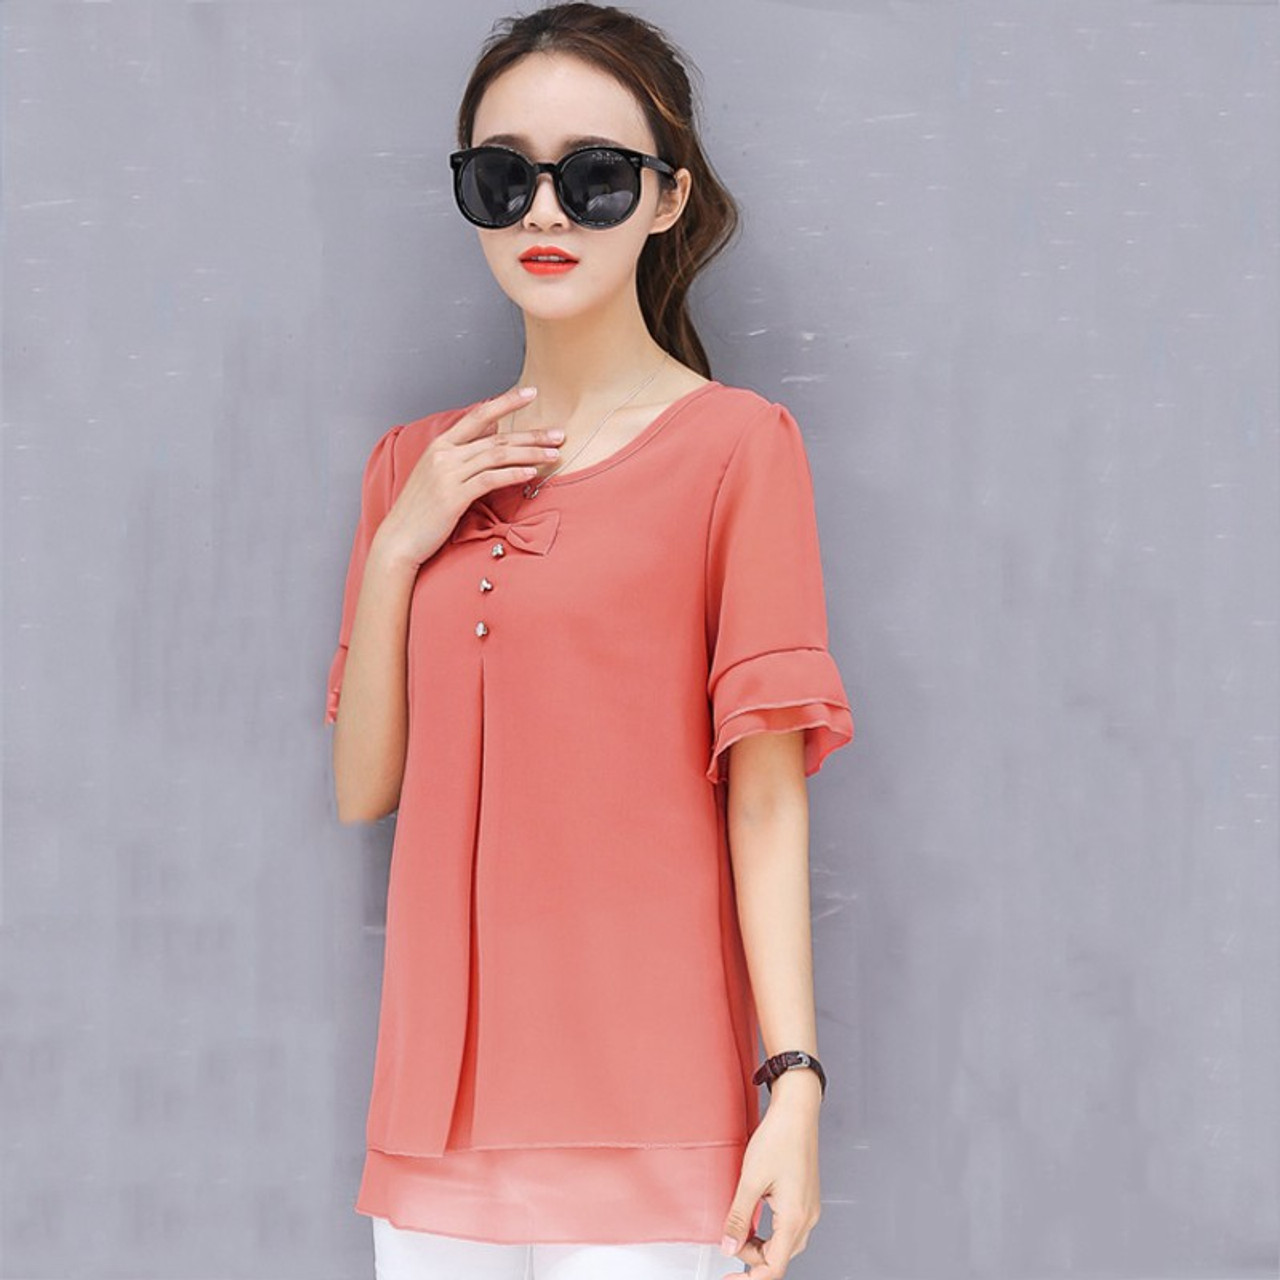 f7d6eba7e69 ... 2018 New Arrival Summer Tops Women Korean Fashion Solid Chiffon Blouse  Mujer Short Sleeve Plus Size ...